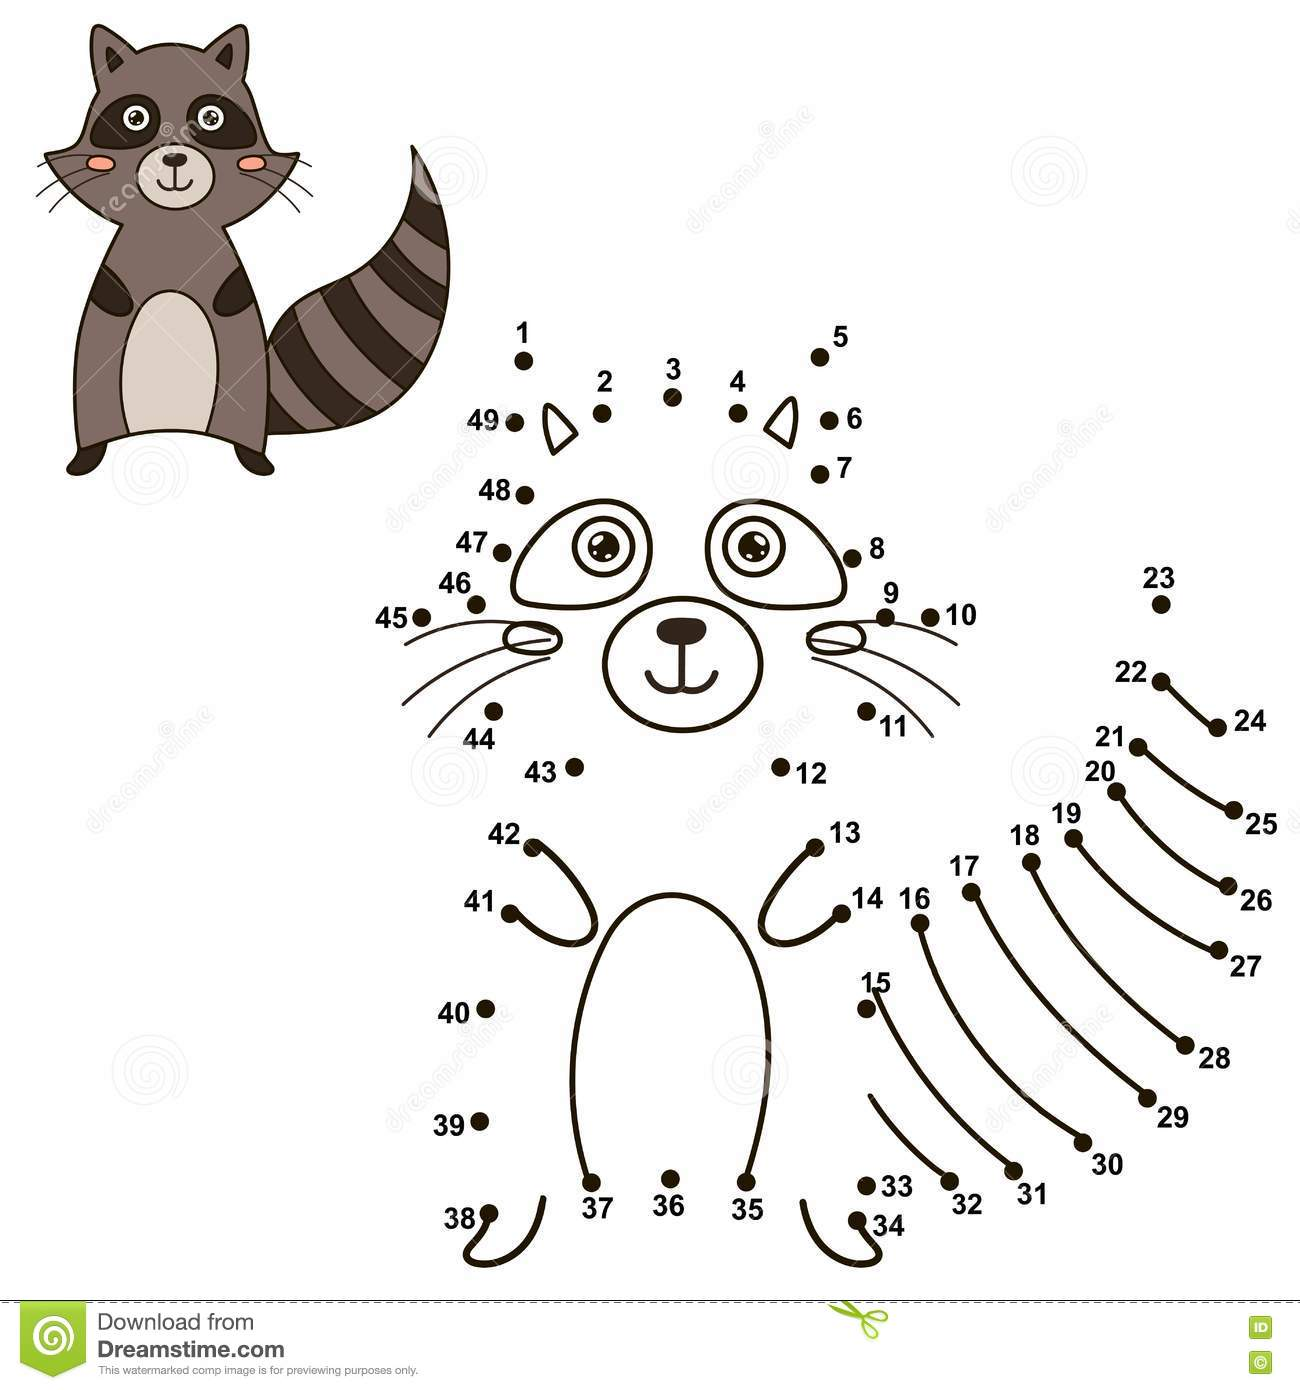 Connect The Dots To Draw The Cute Raccoon And Color It